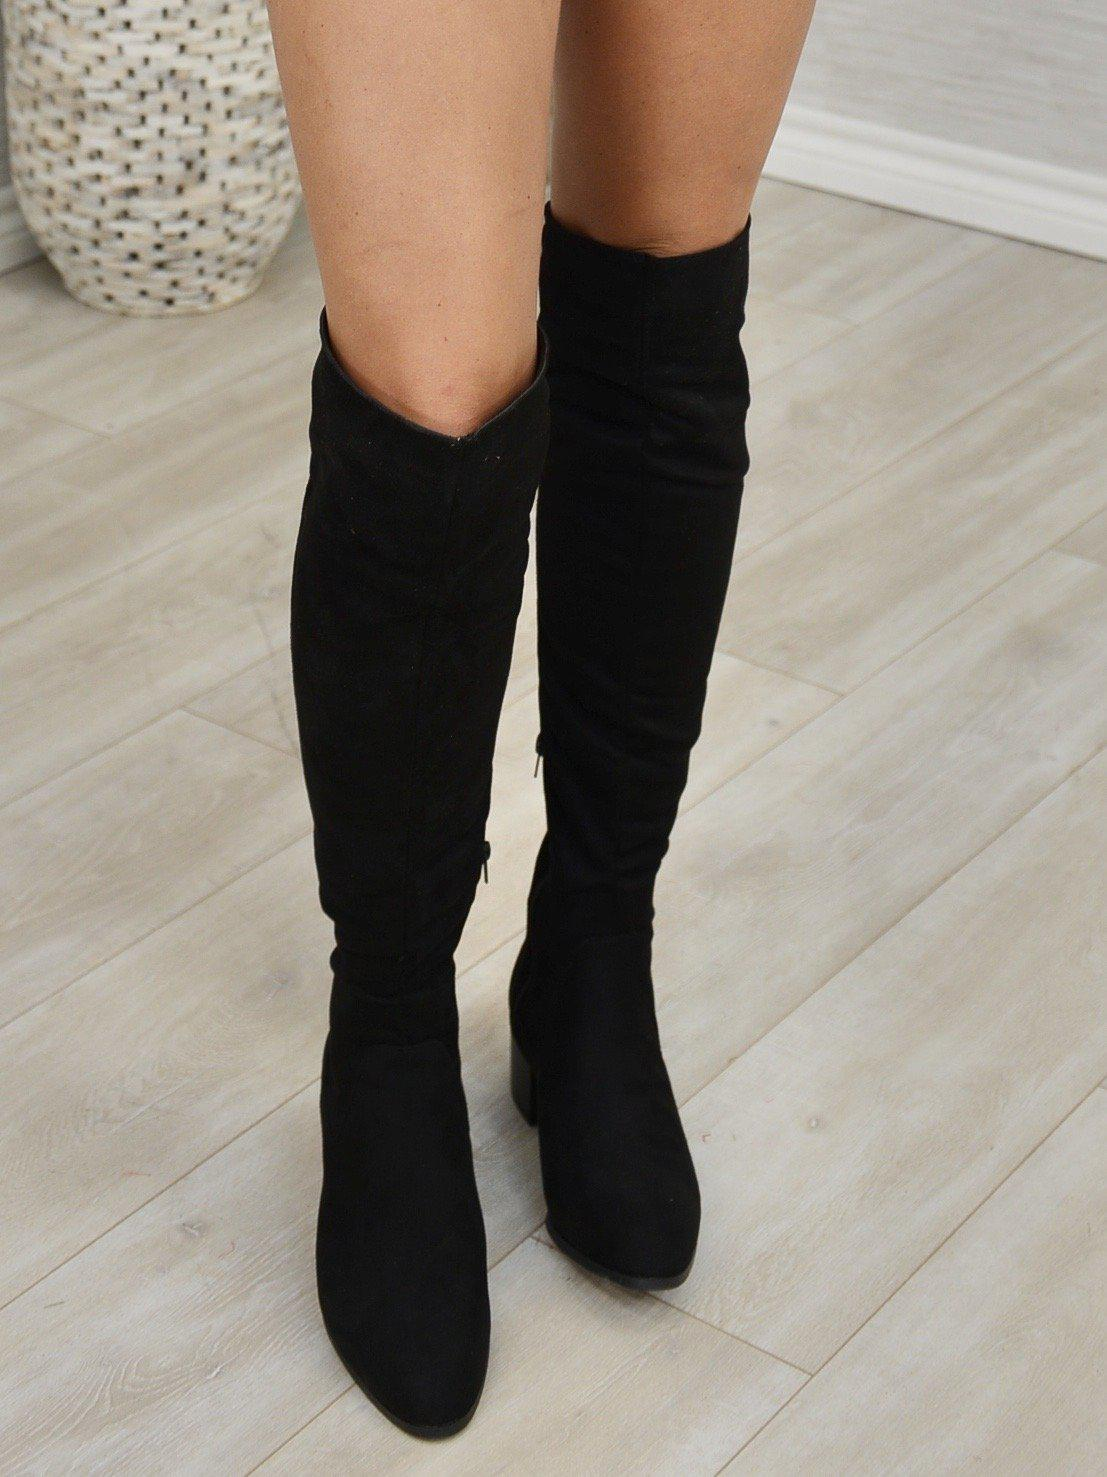 I'm Over It Boots-Women's -New Arrivals-Runway Seven